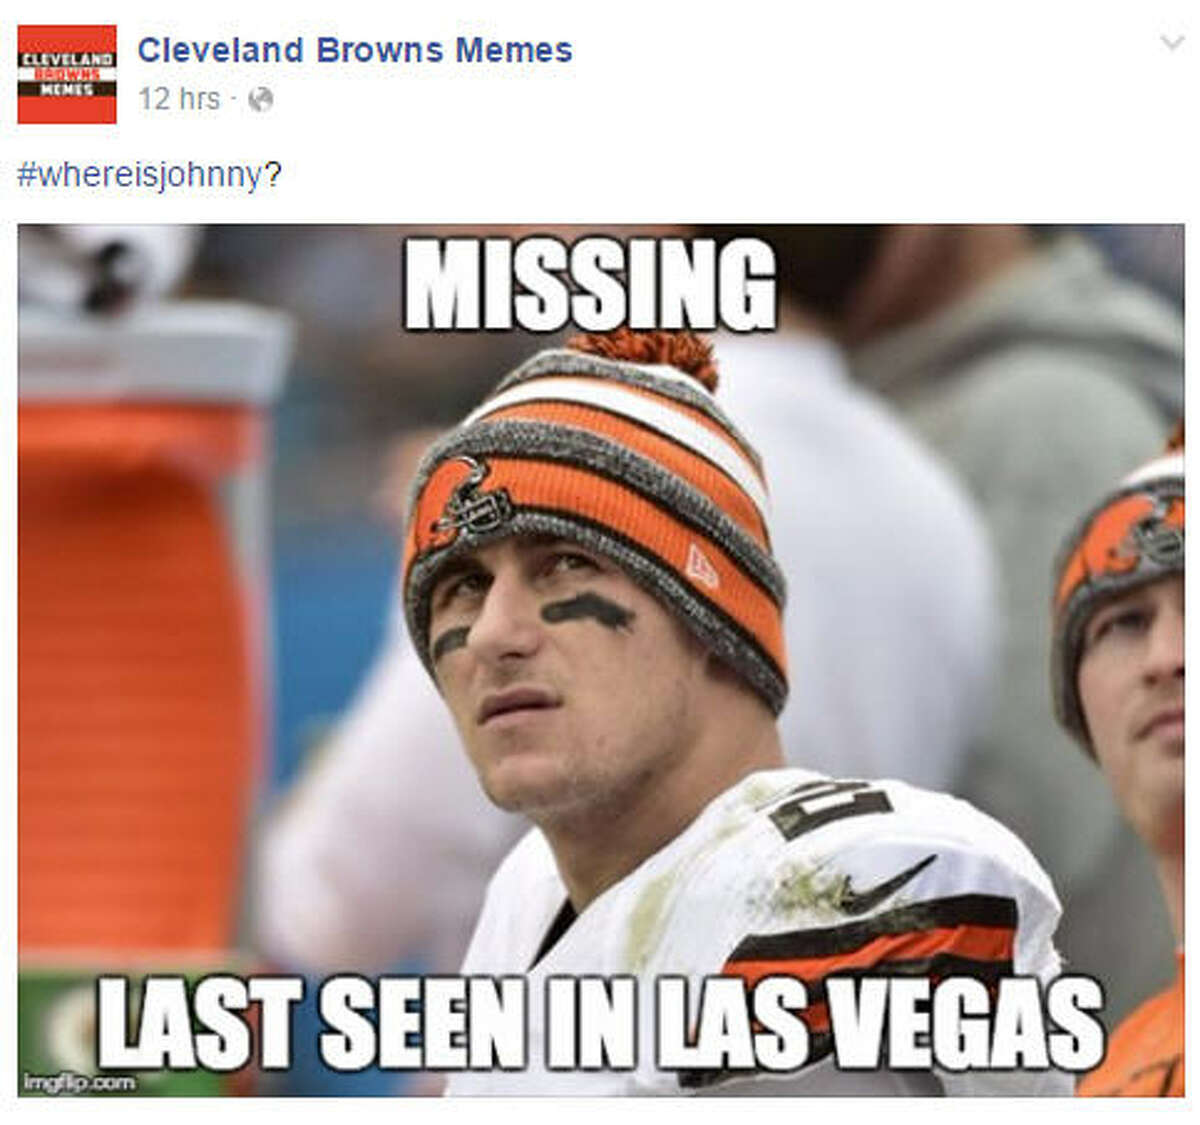 Manziel in Vegas? Johnny Manziel is in the NFL's concussion protocol and is supposed to show up for treatment Sunday morning. He never shows up and rumors are that he was in Las Vegas for the weekend wearing a disguise so no one would recognize him.